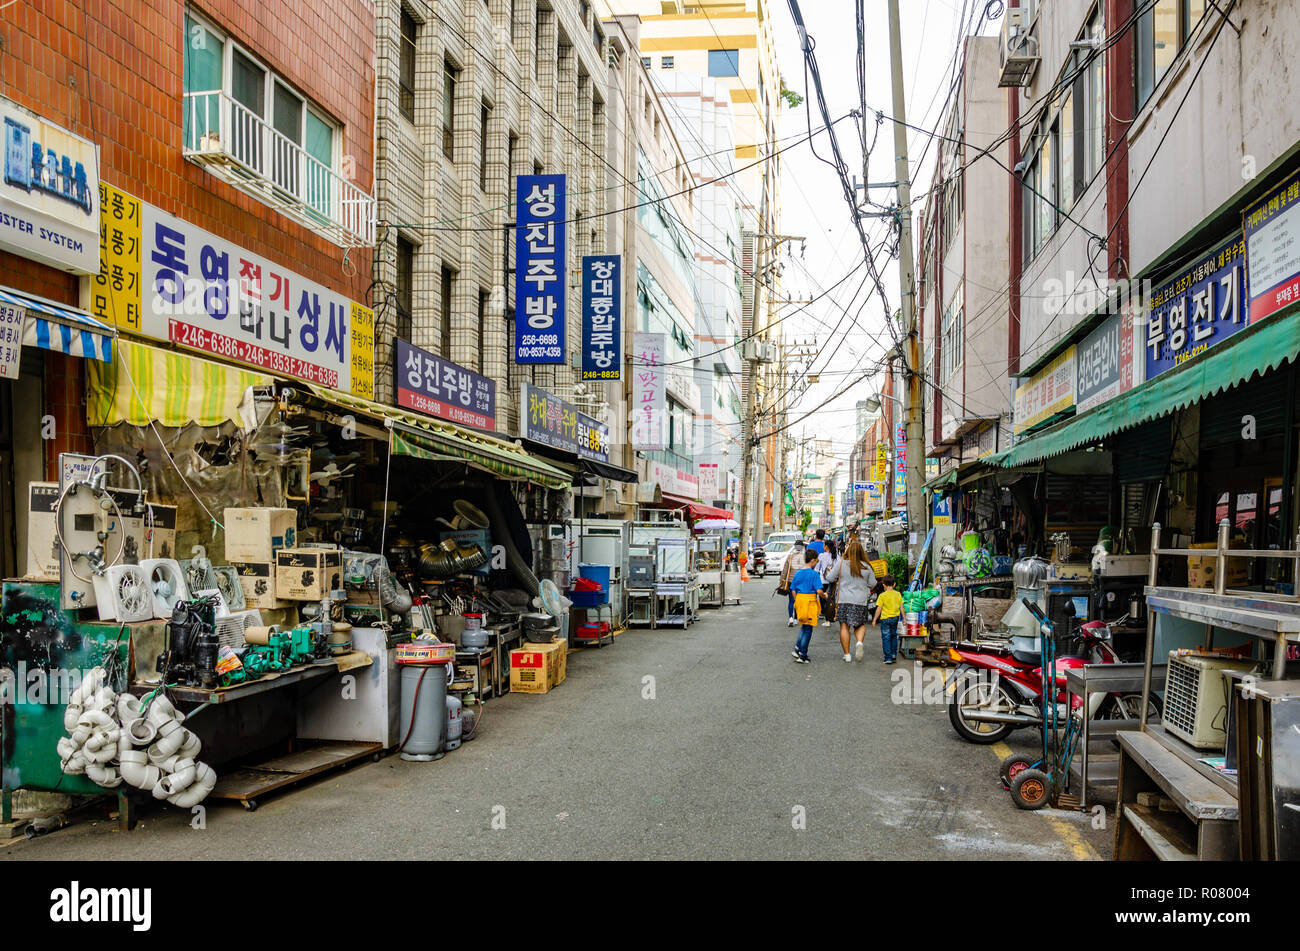 Overhead power cables criss-cross a street lined with hardware stores in Busan, South Korea. - Stock Image